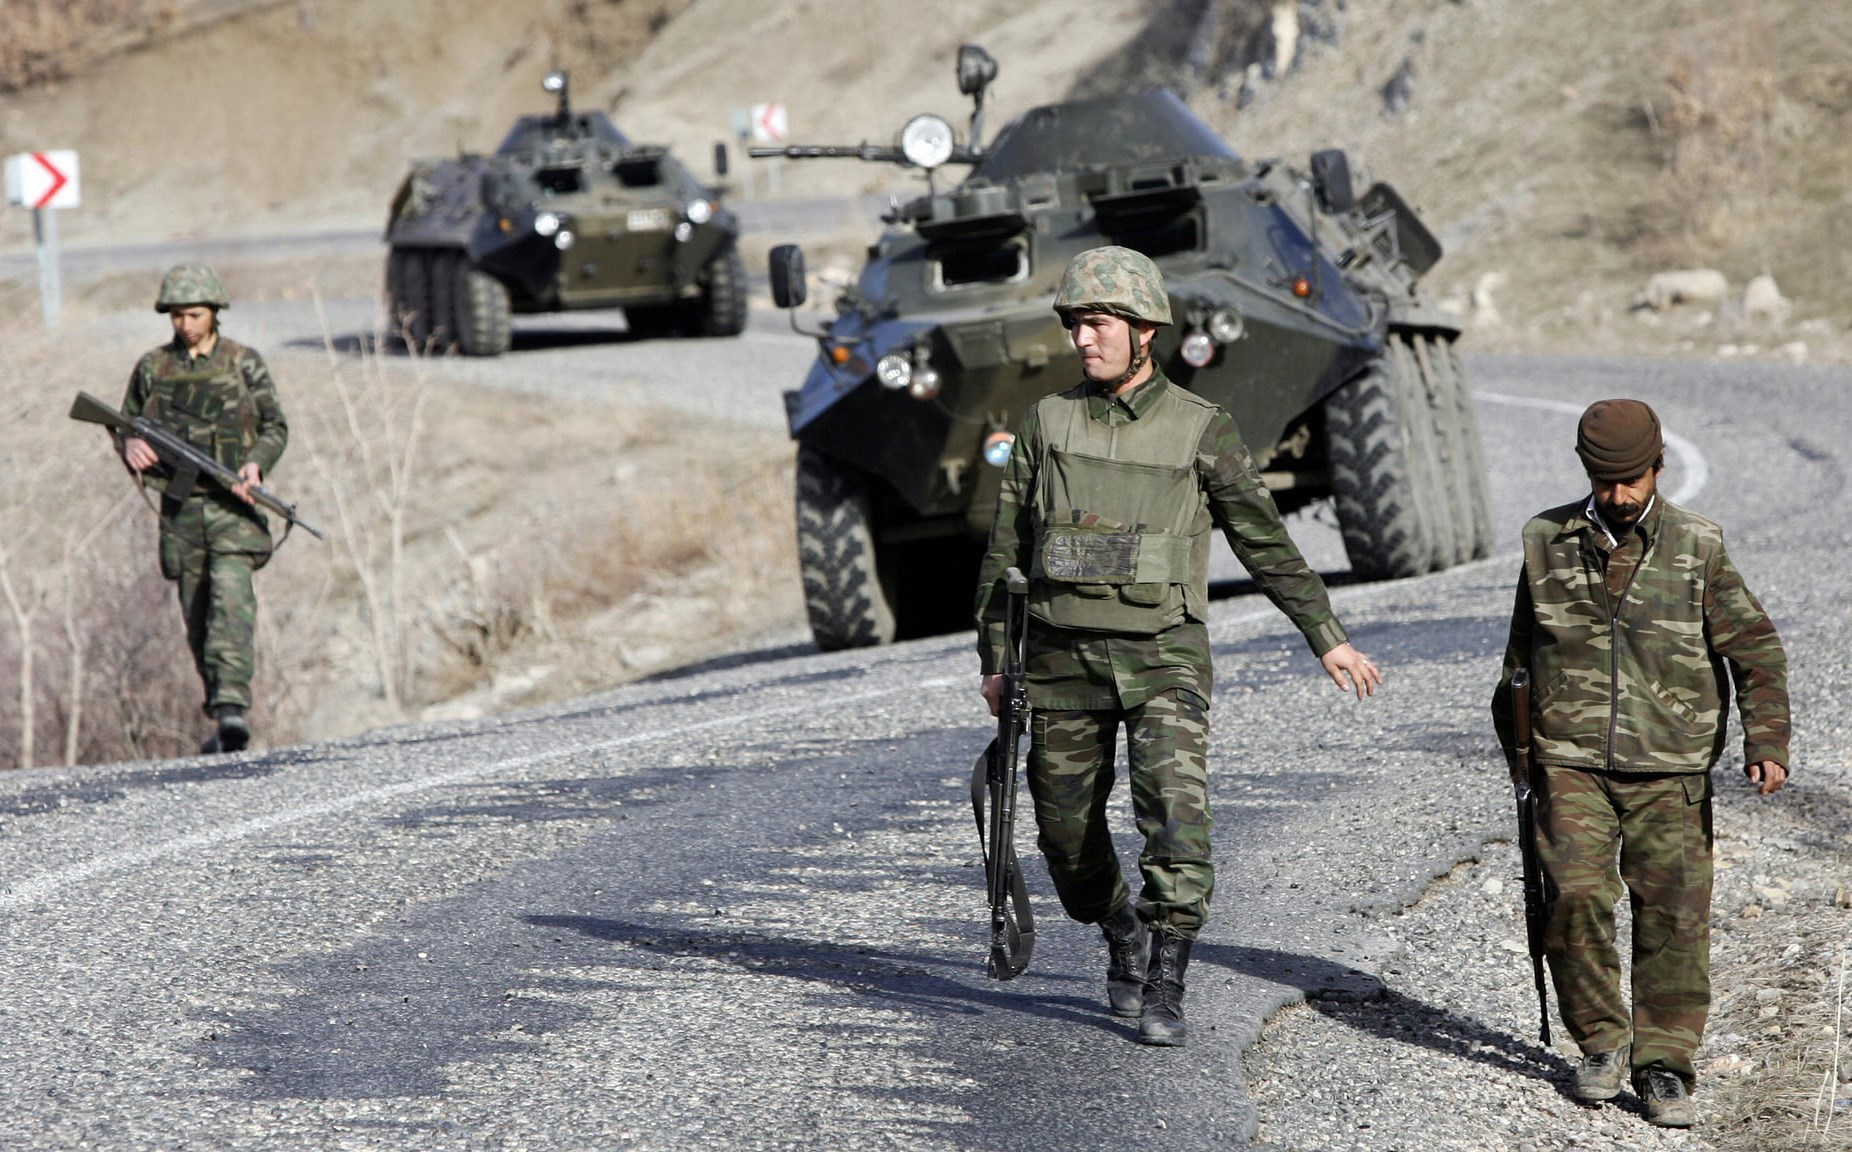 Turkish forces patrolling near the Kurdistan Region border. File photo: Mustafa Ozer/AFP